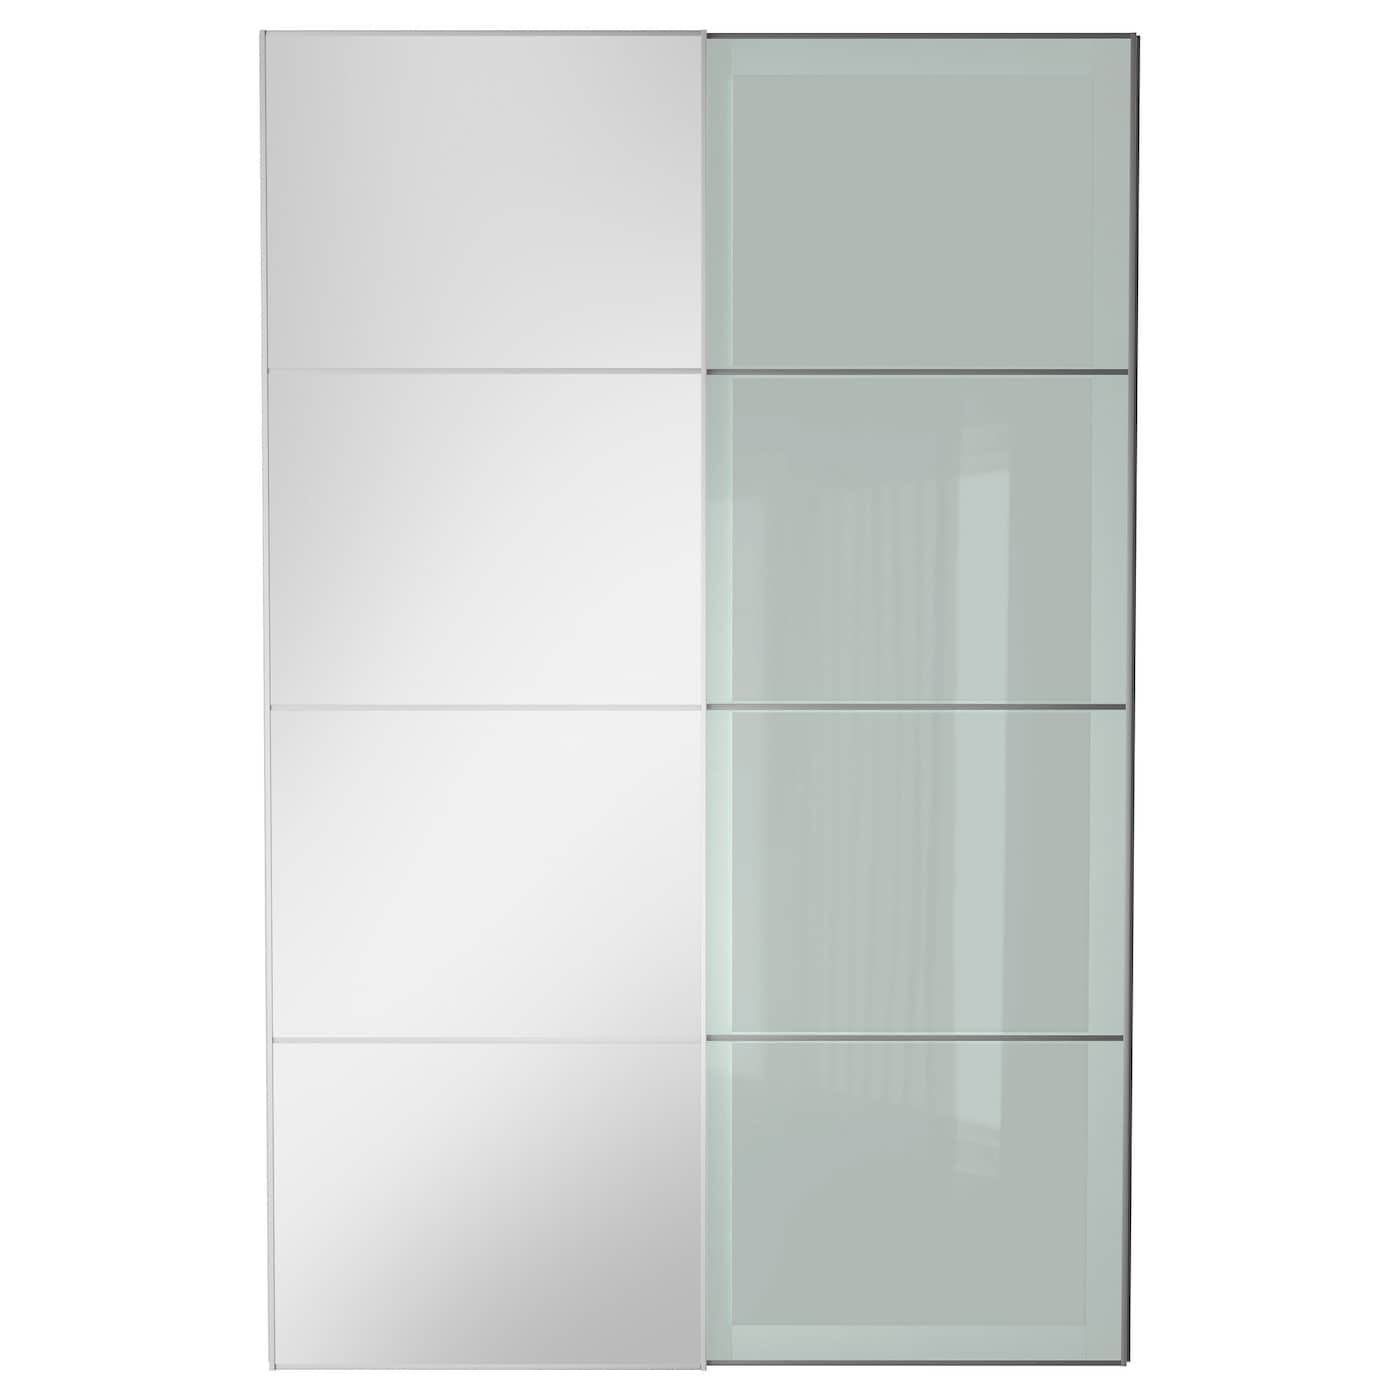 Auli sekken pair of sliding doors mirror glass frosted for Ikea porte miroir